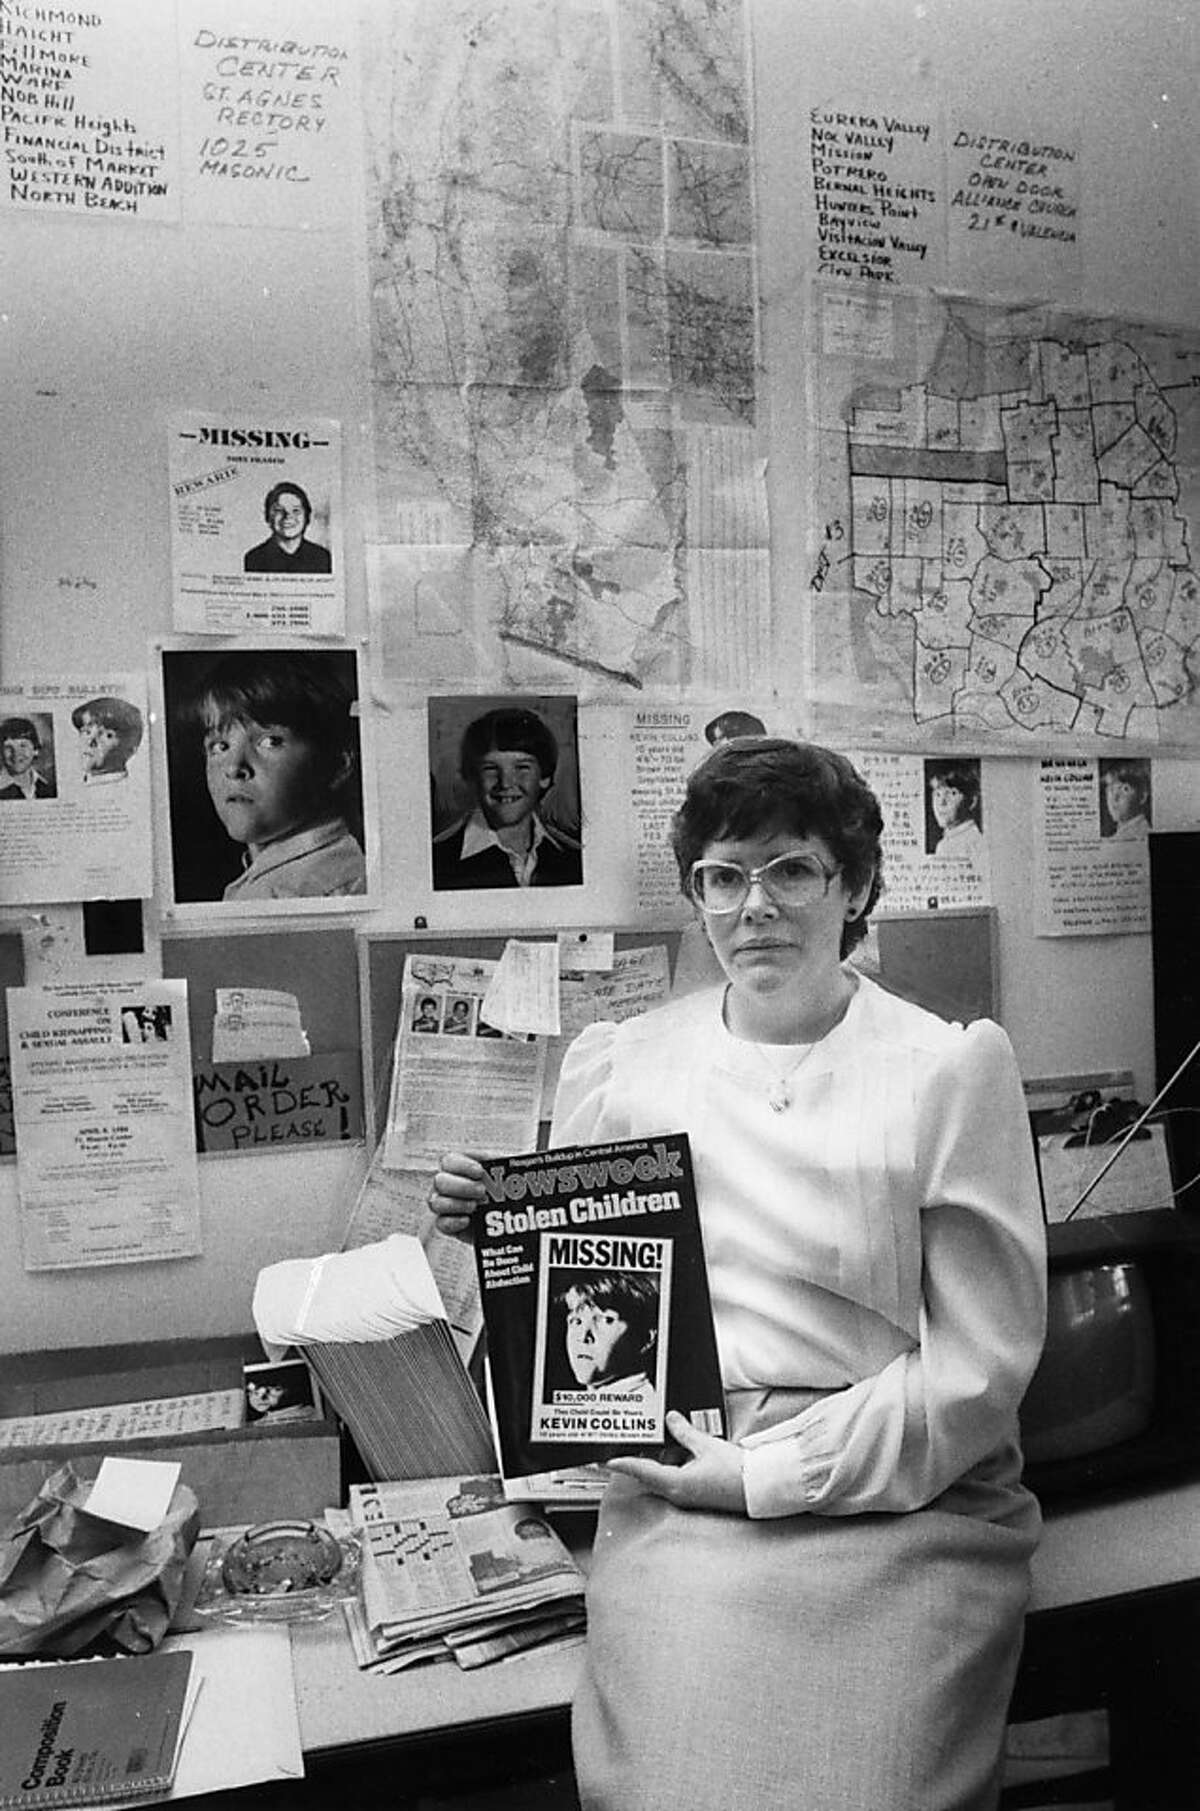 Ann Collins, mother of Kevin Collins, poses with a Newsweek cover depicting her missing son on March 12, 1984. Kevin Collins disappeared in the Haight-Ashbury neighborhood of San Francisco in 1984.